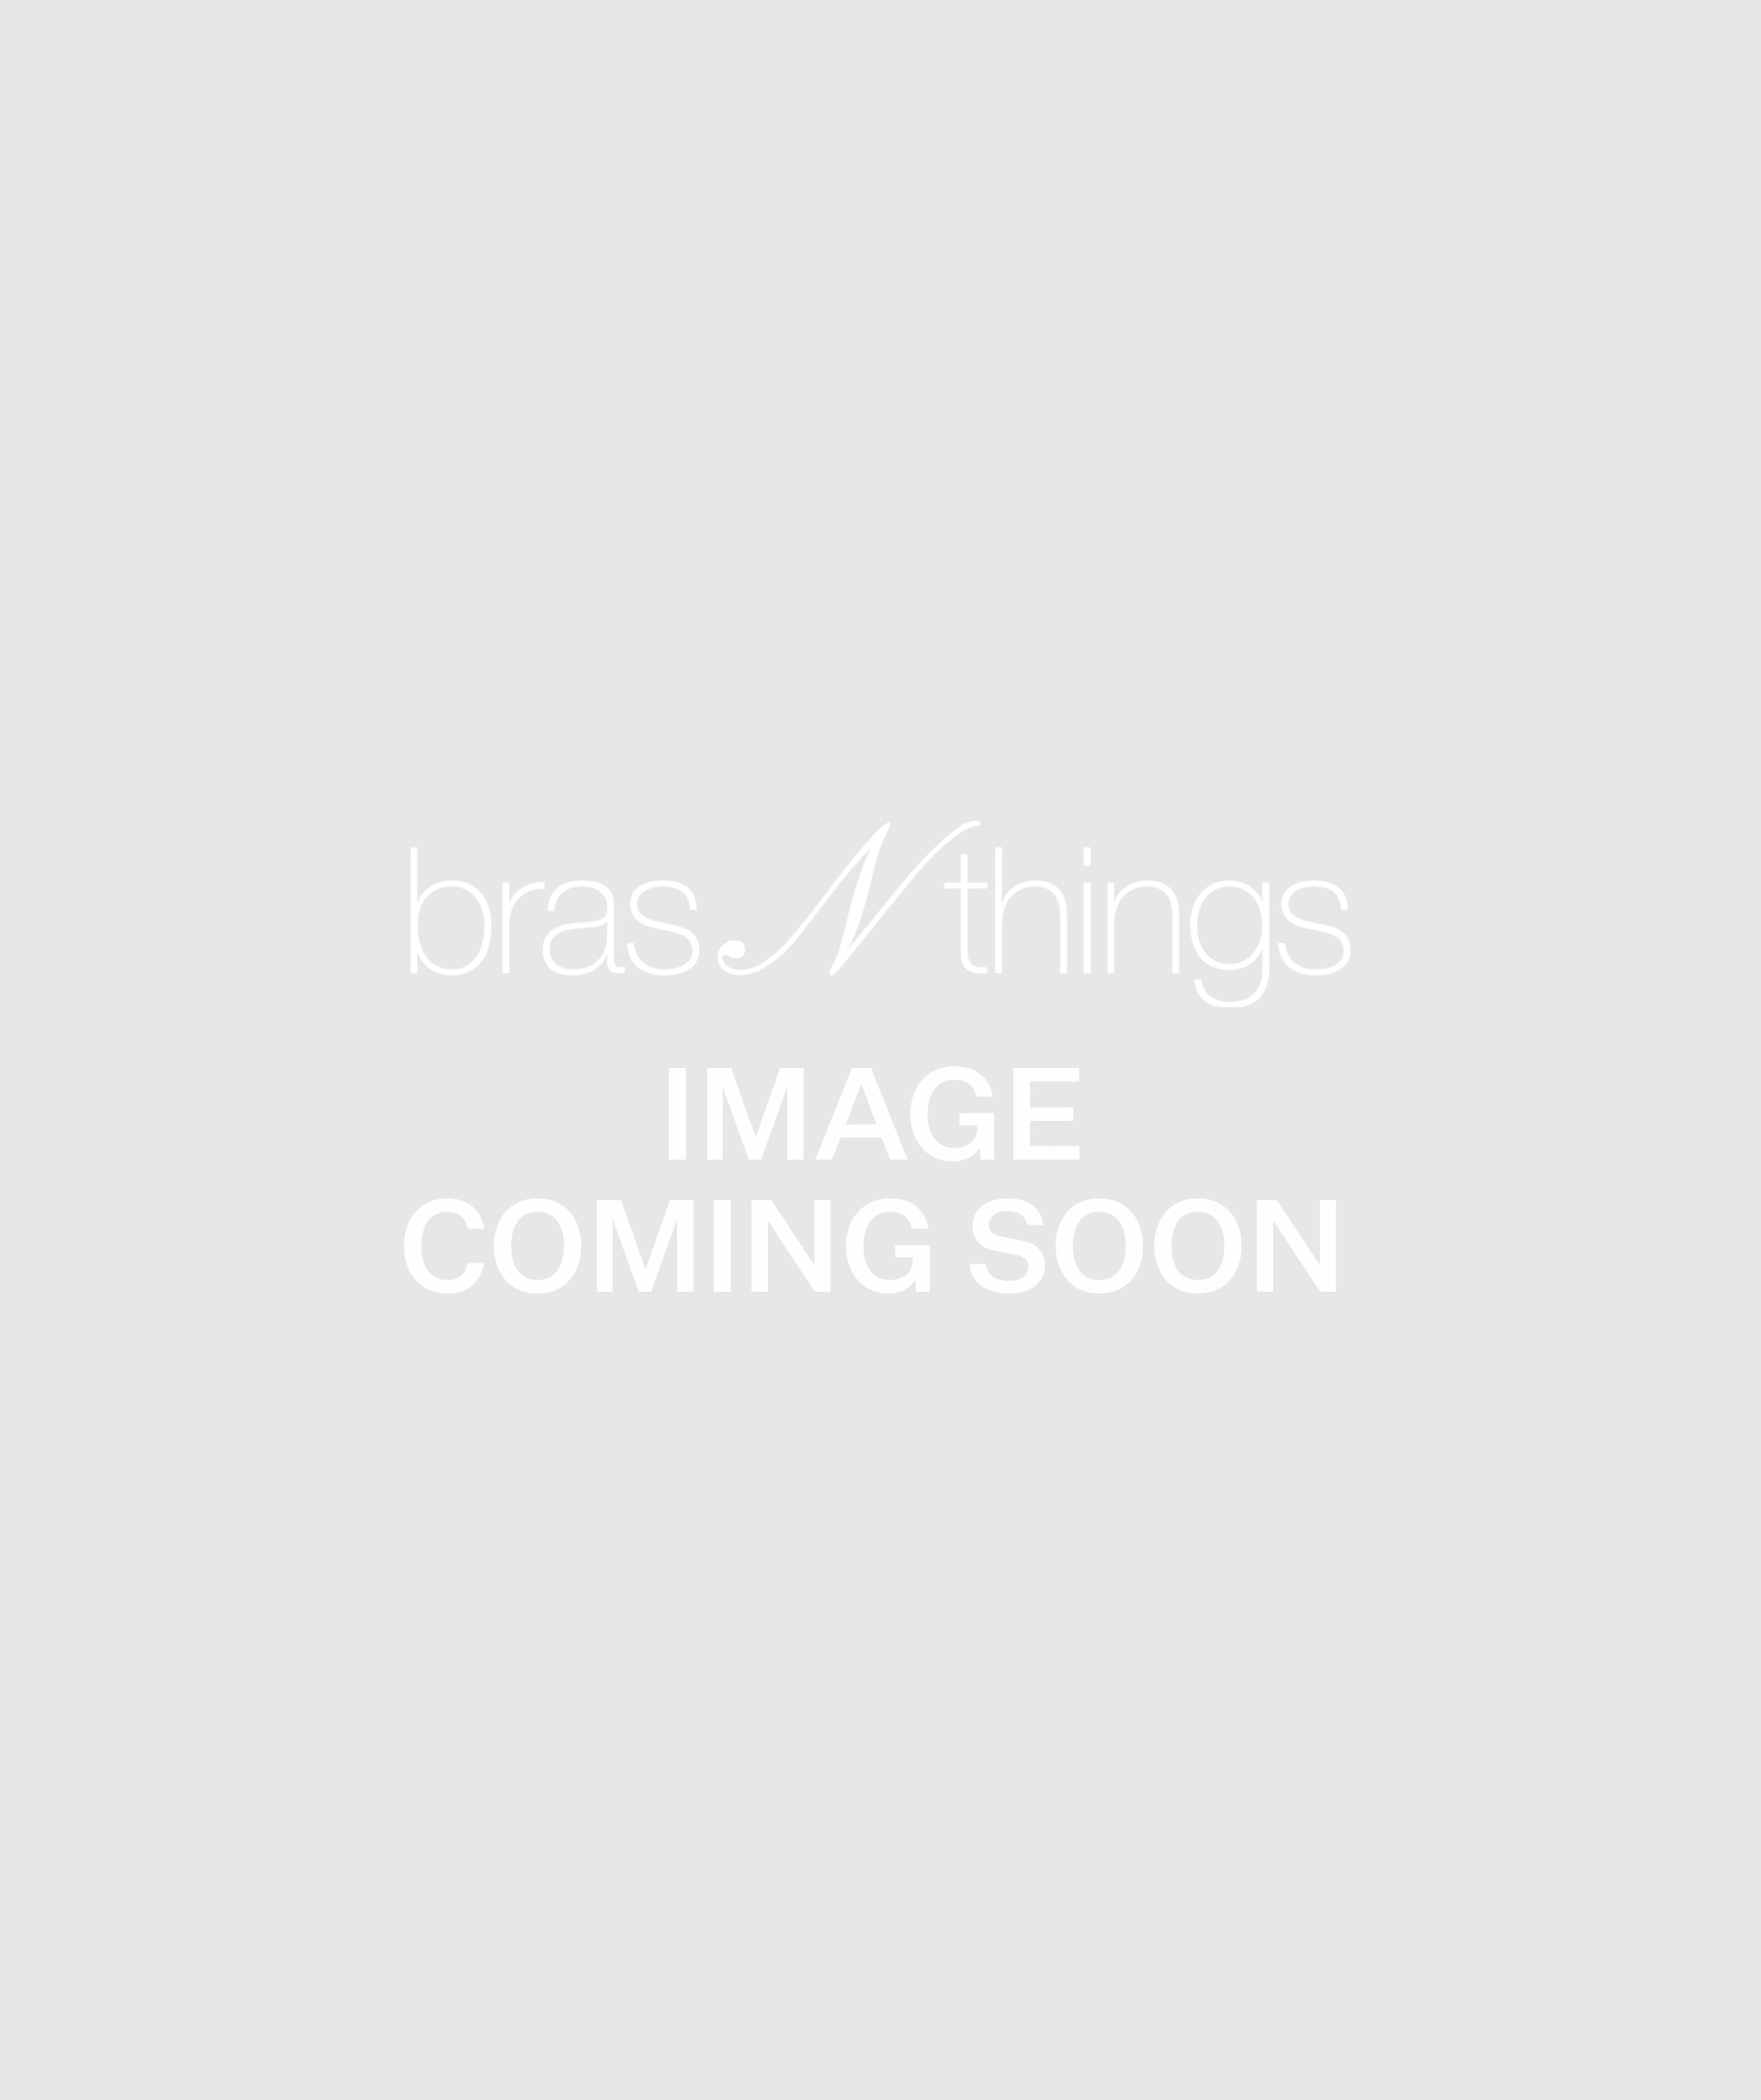 Body Bliss Brazilian Knicker - Nude